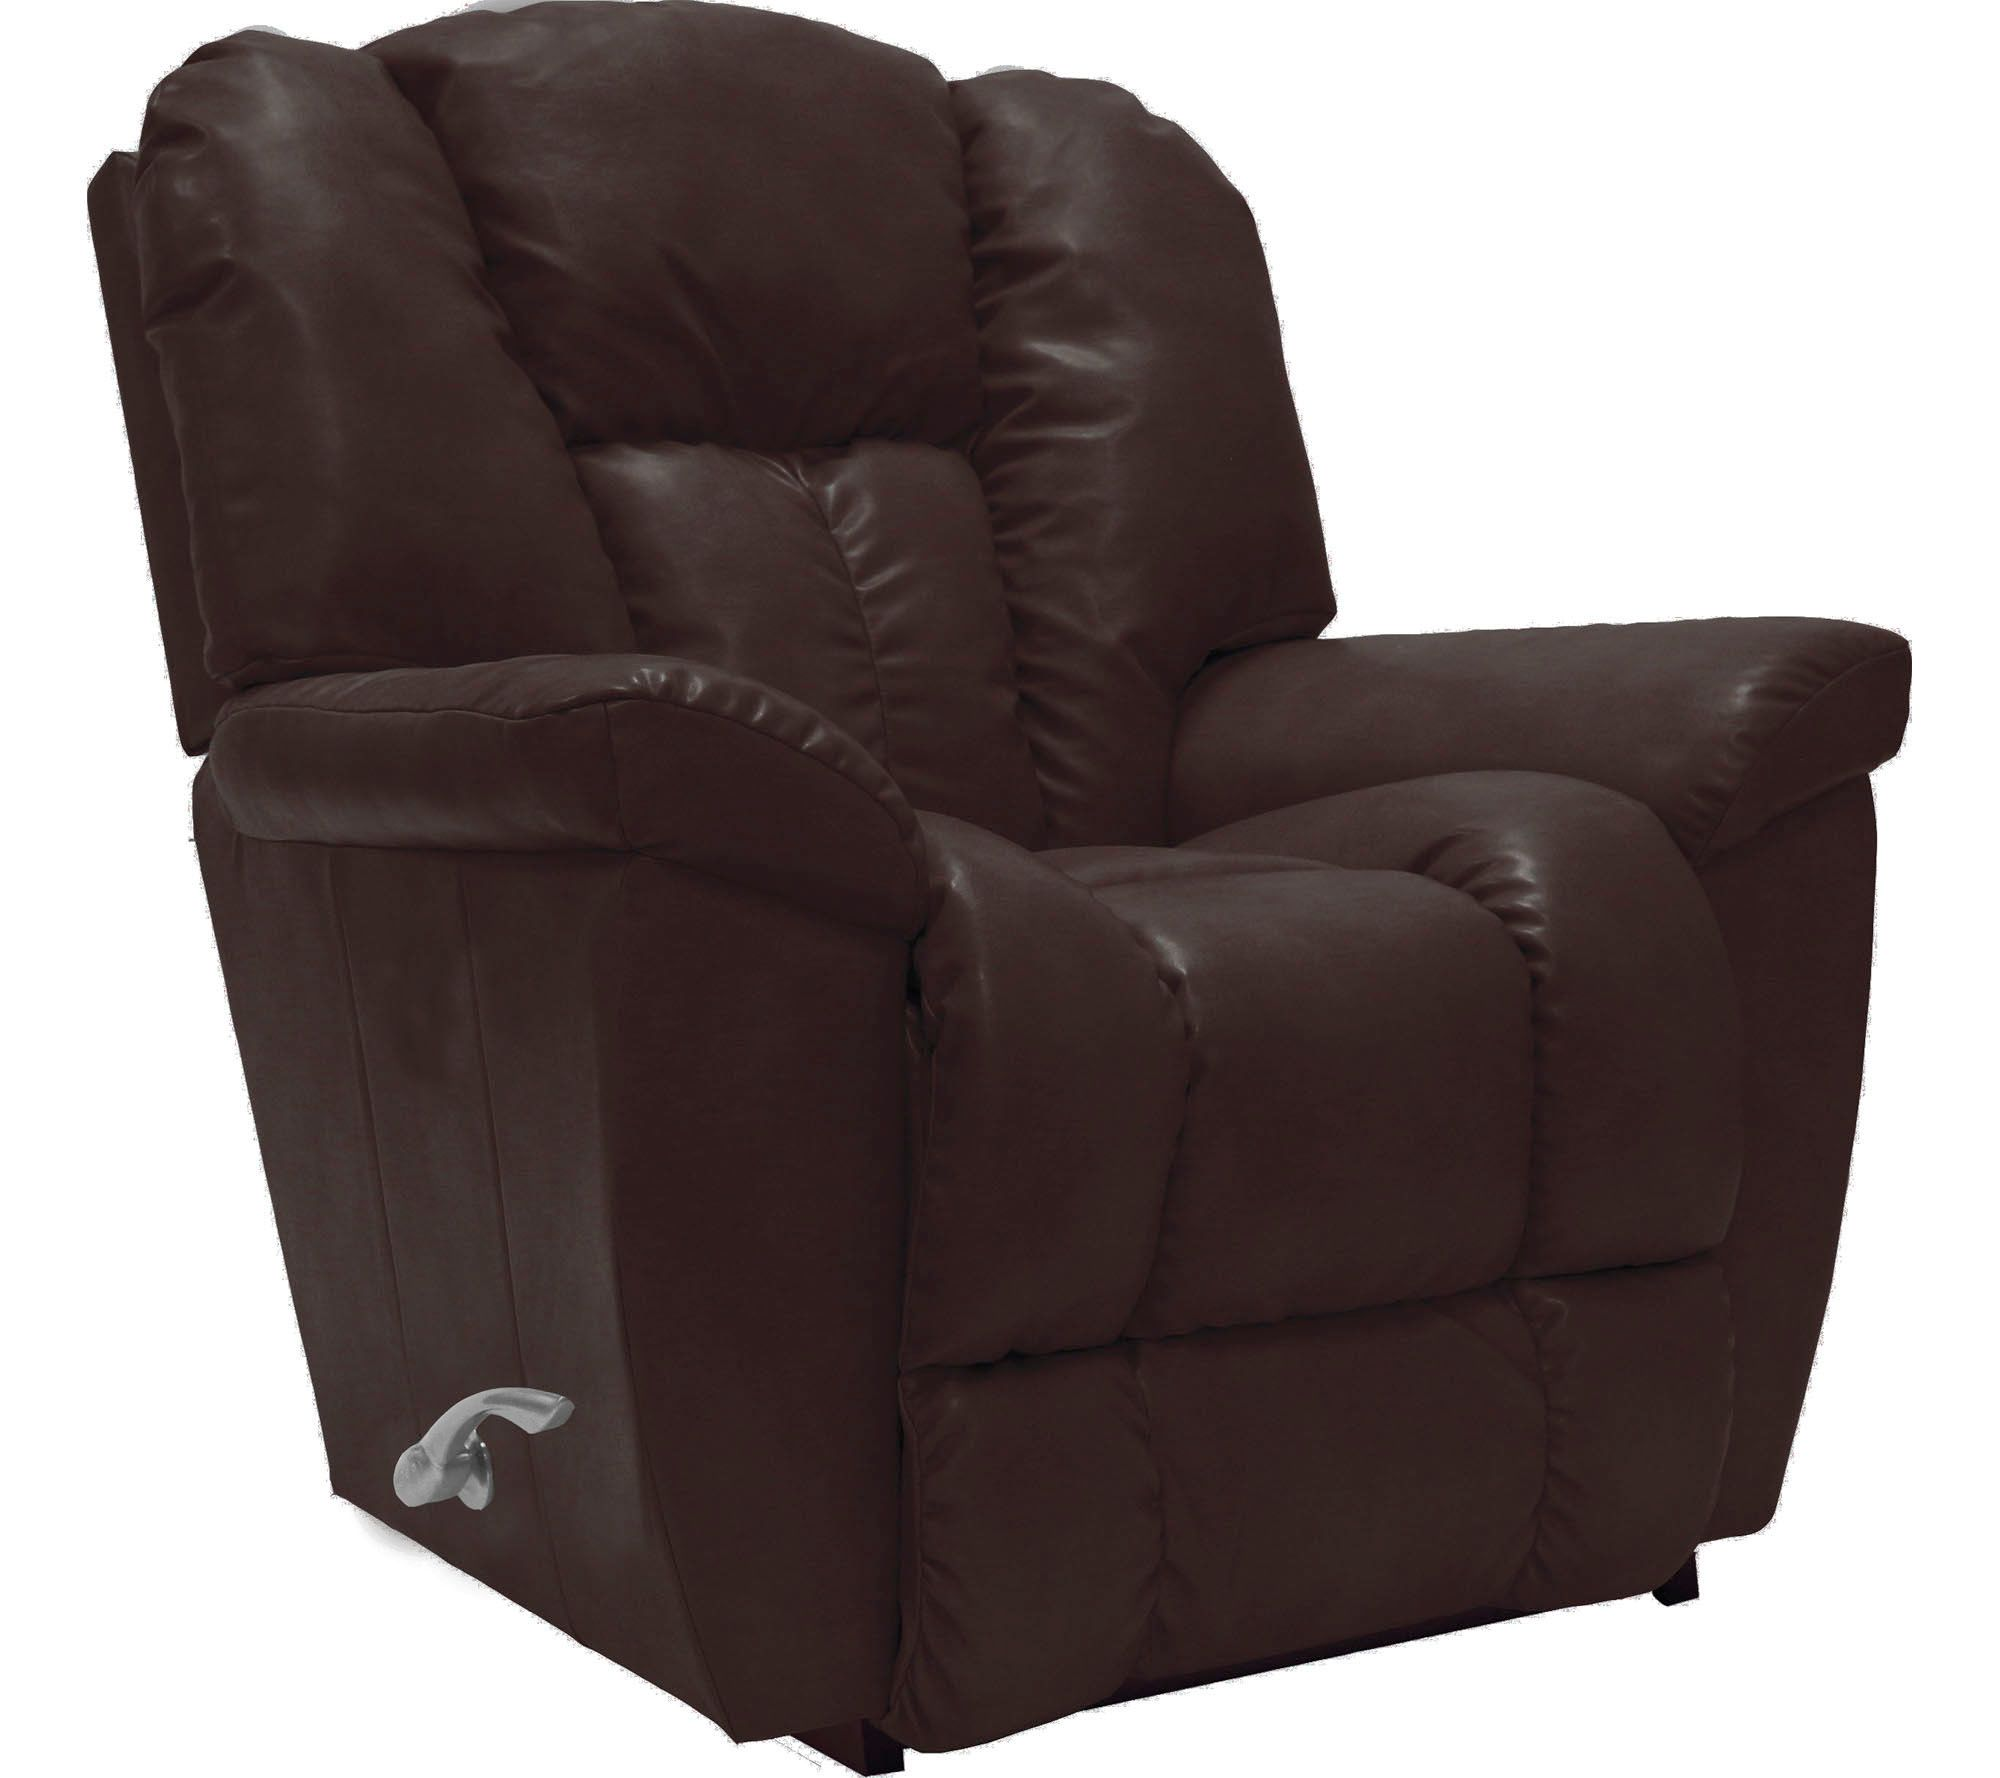 La z boy cool power leather 2 seater with 2 reclining chairs -  Top Lazy Boy Rocking Chair